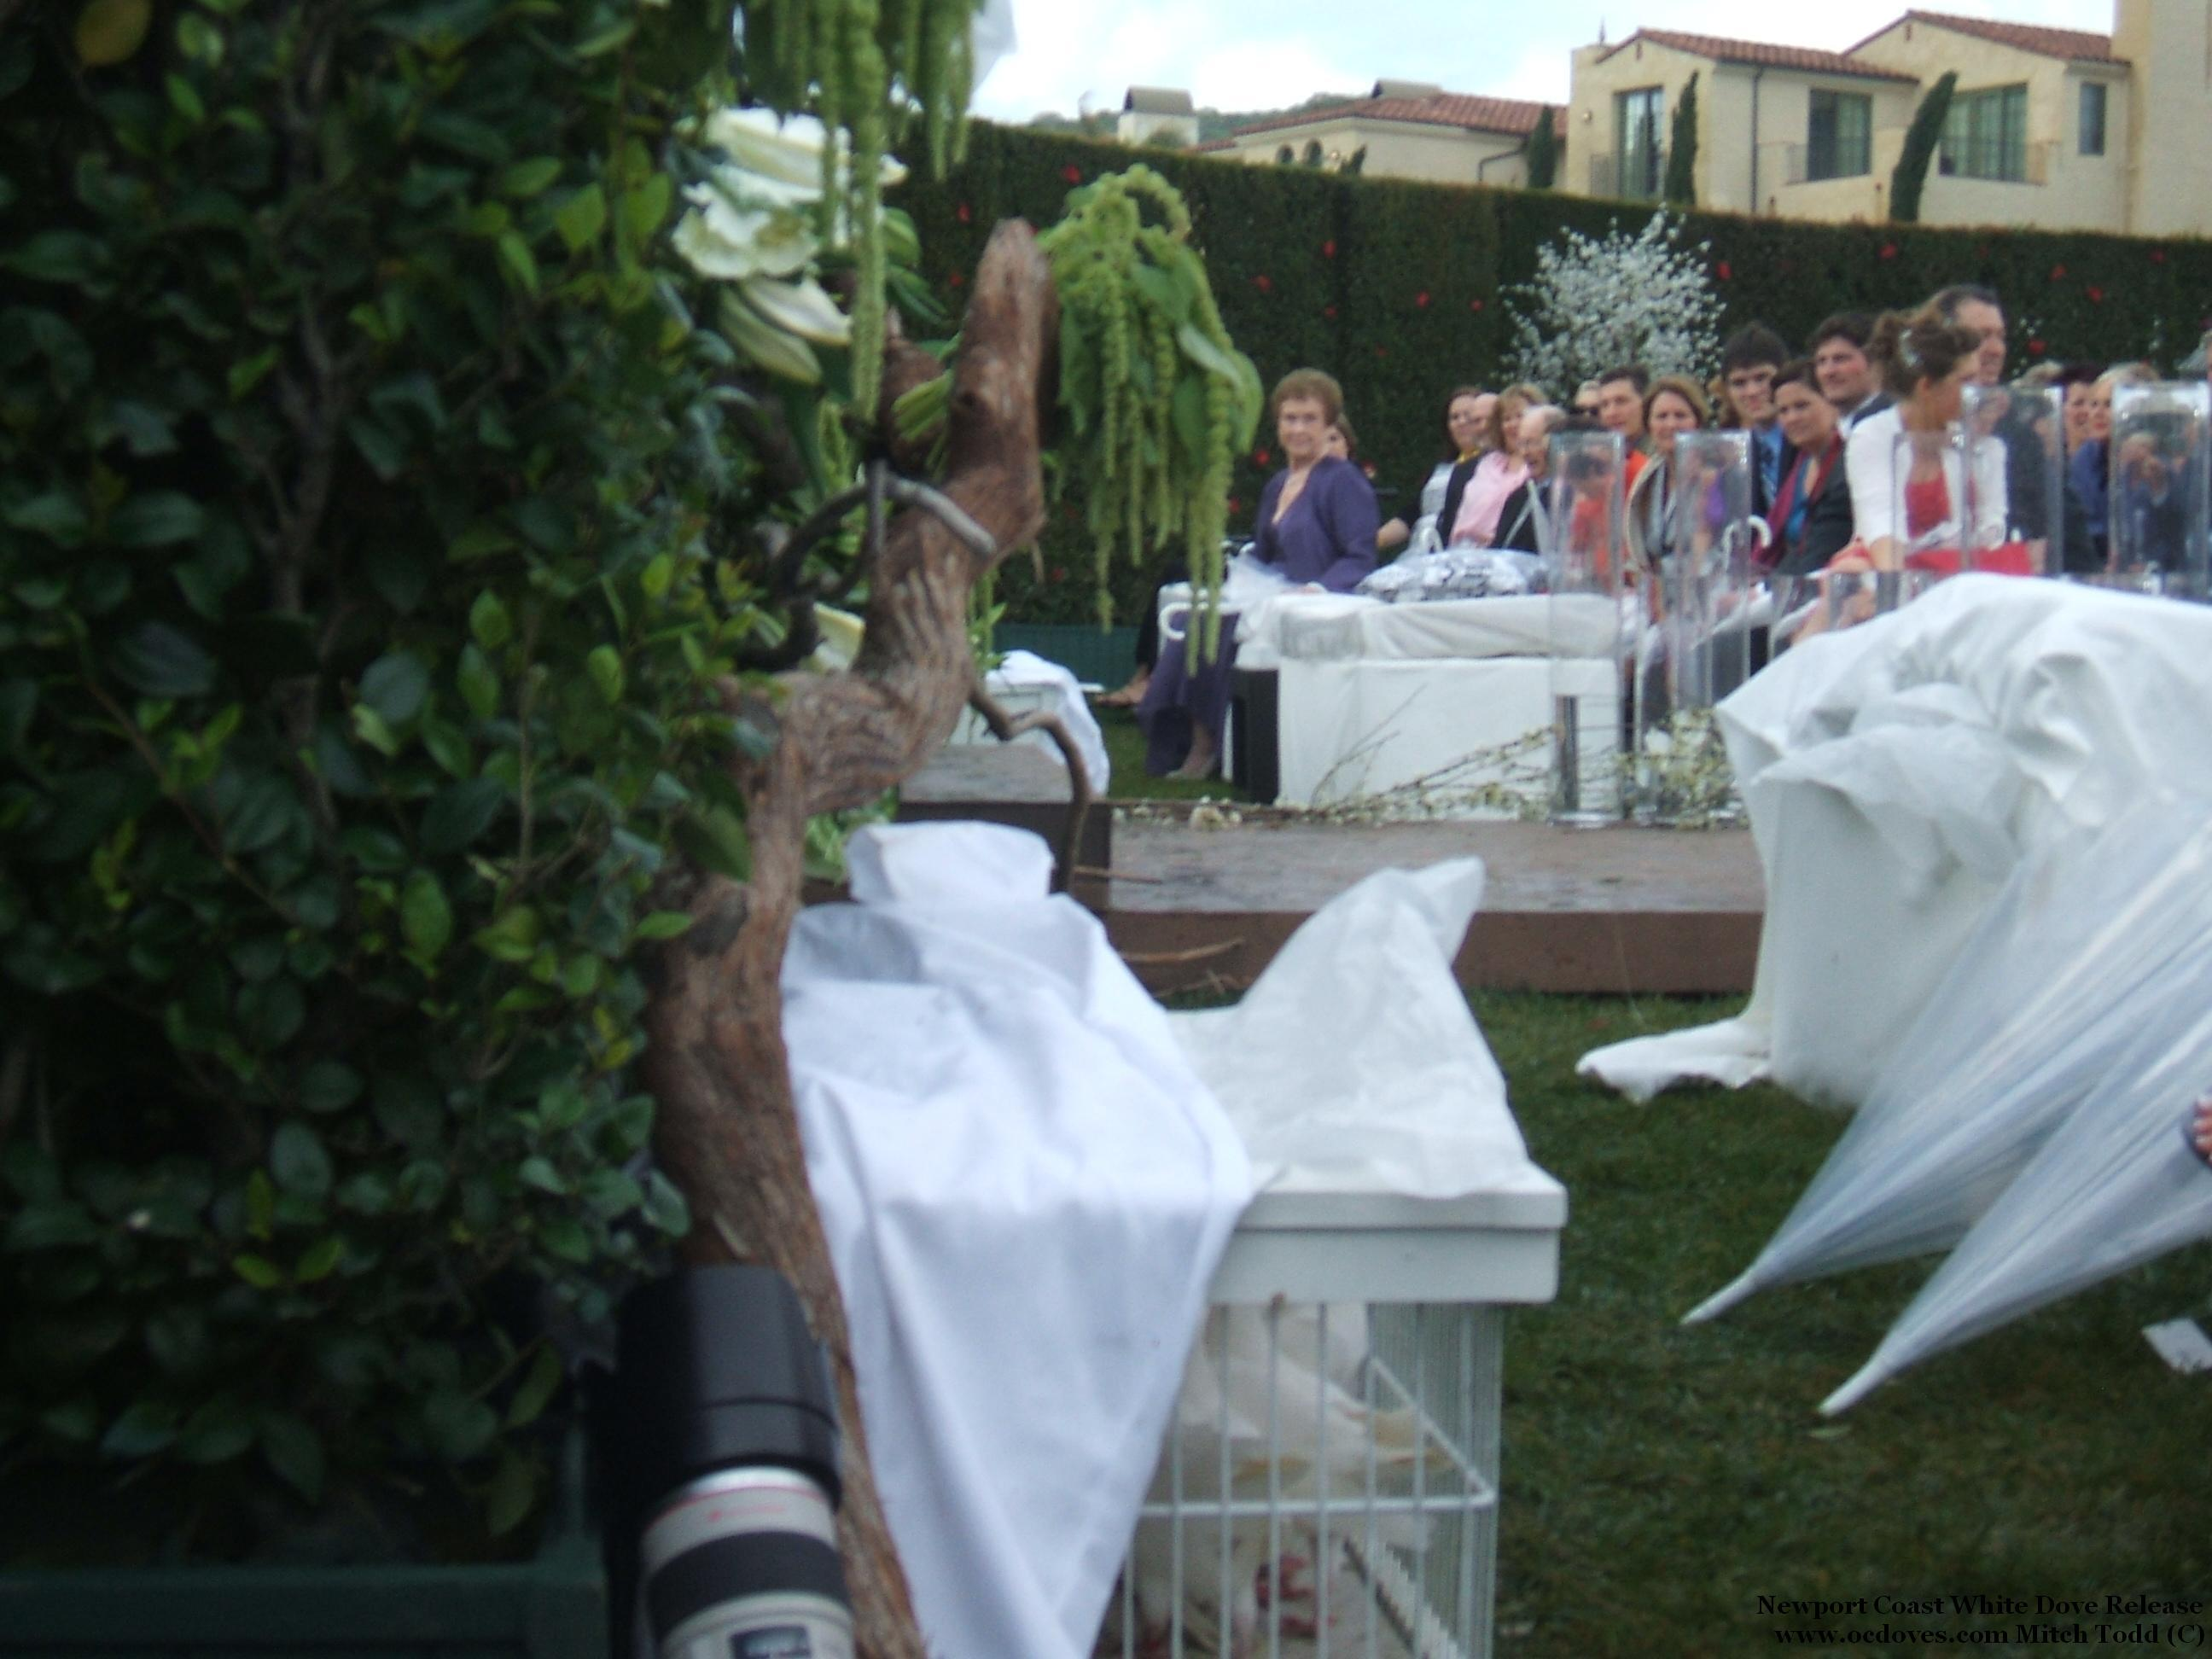 Wedding, Bachelor, The, Release, Dove, Newport coast white dove release llc, Abc